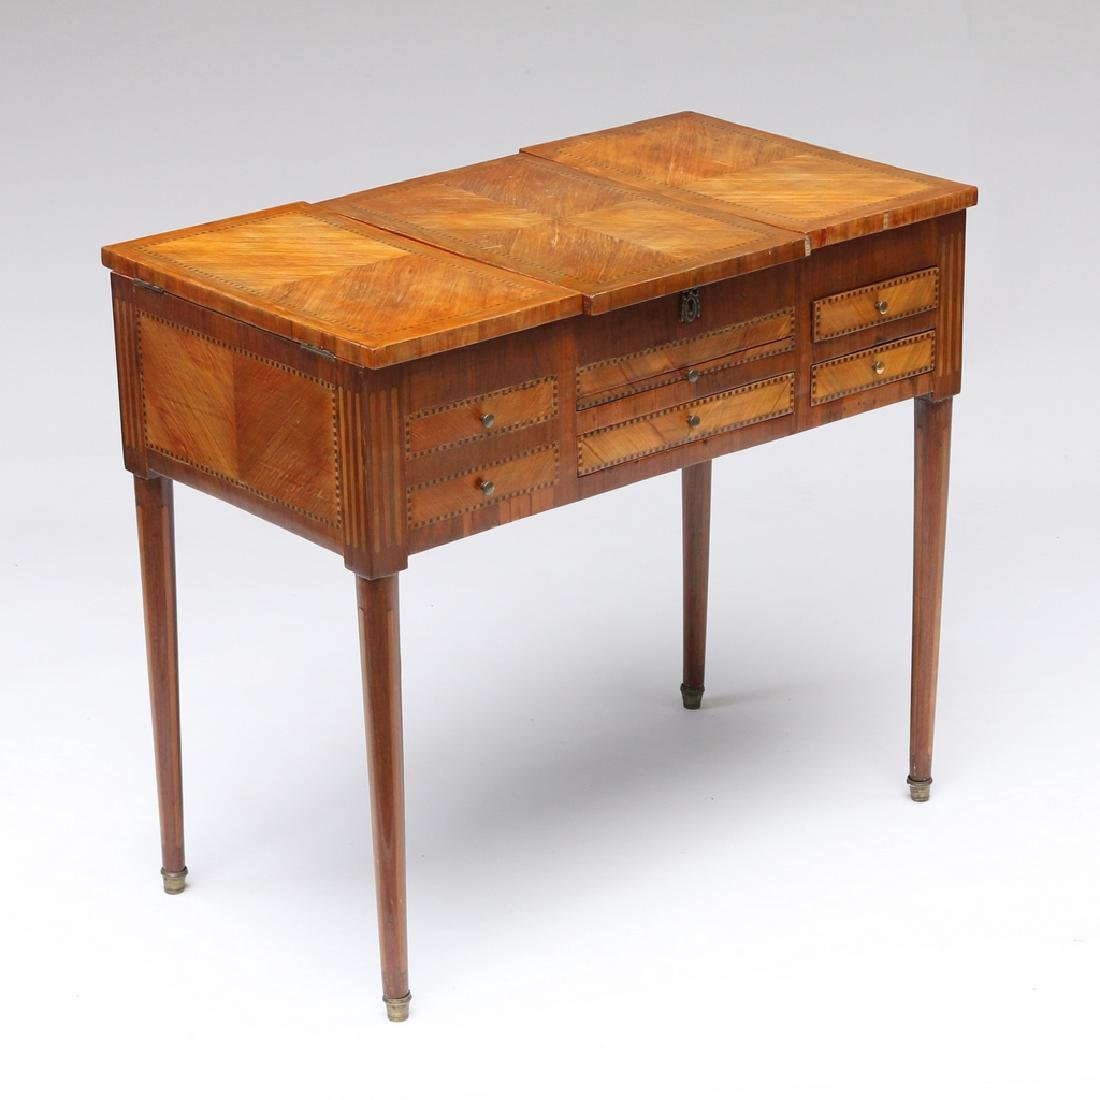 FRENCH MARQUETRY DRESSING (POUDREUSE) TABLE